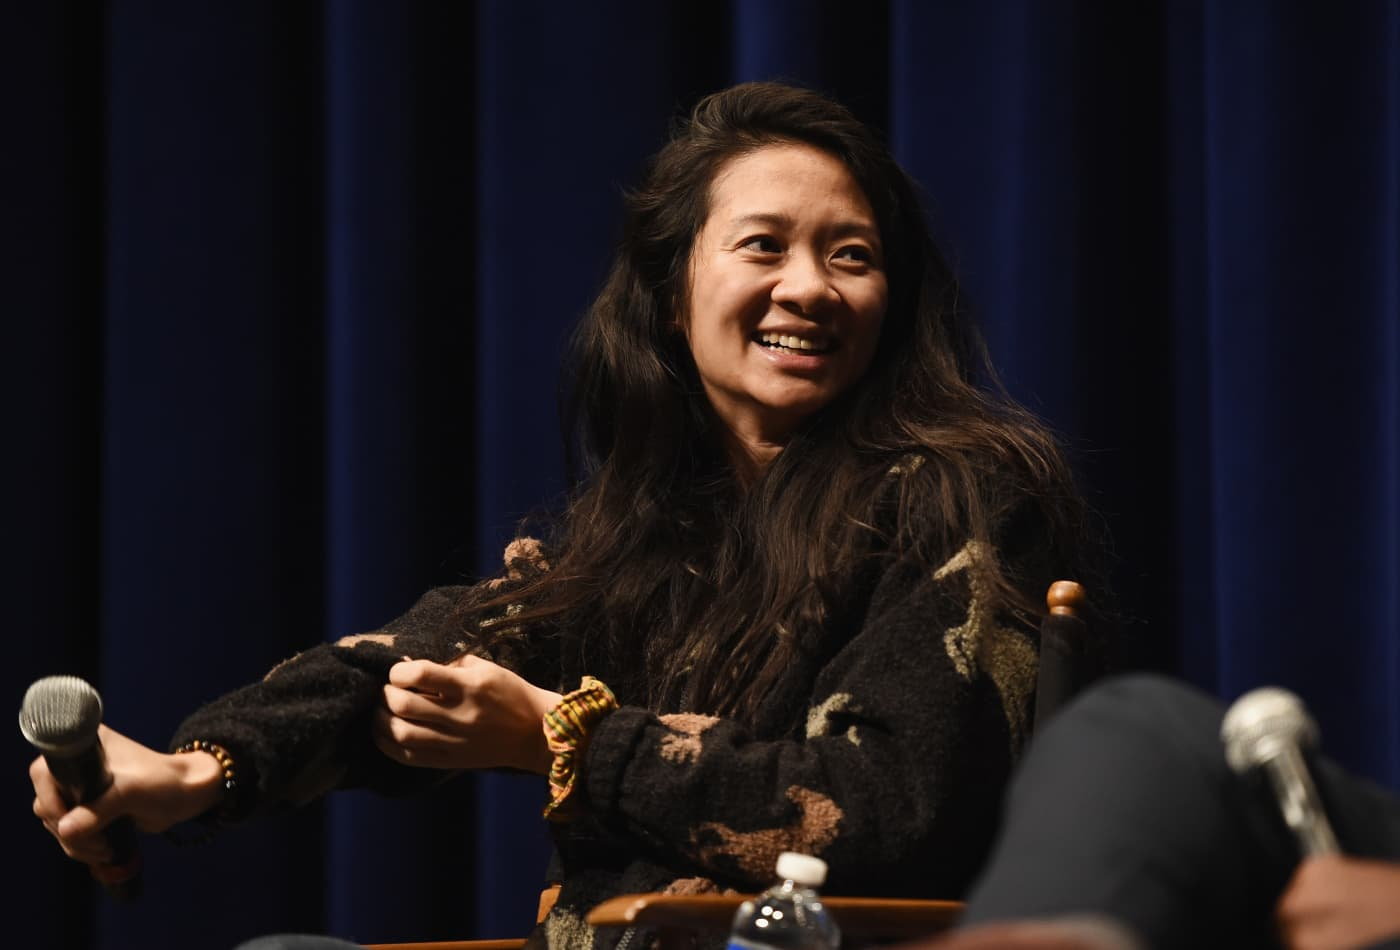 Chloe Zhao Makes History As First Asian Woman to Win Best Director at Golden Globes